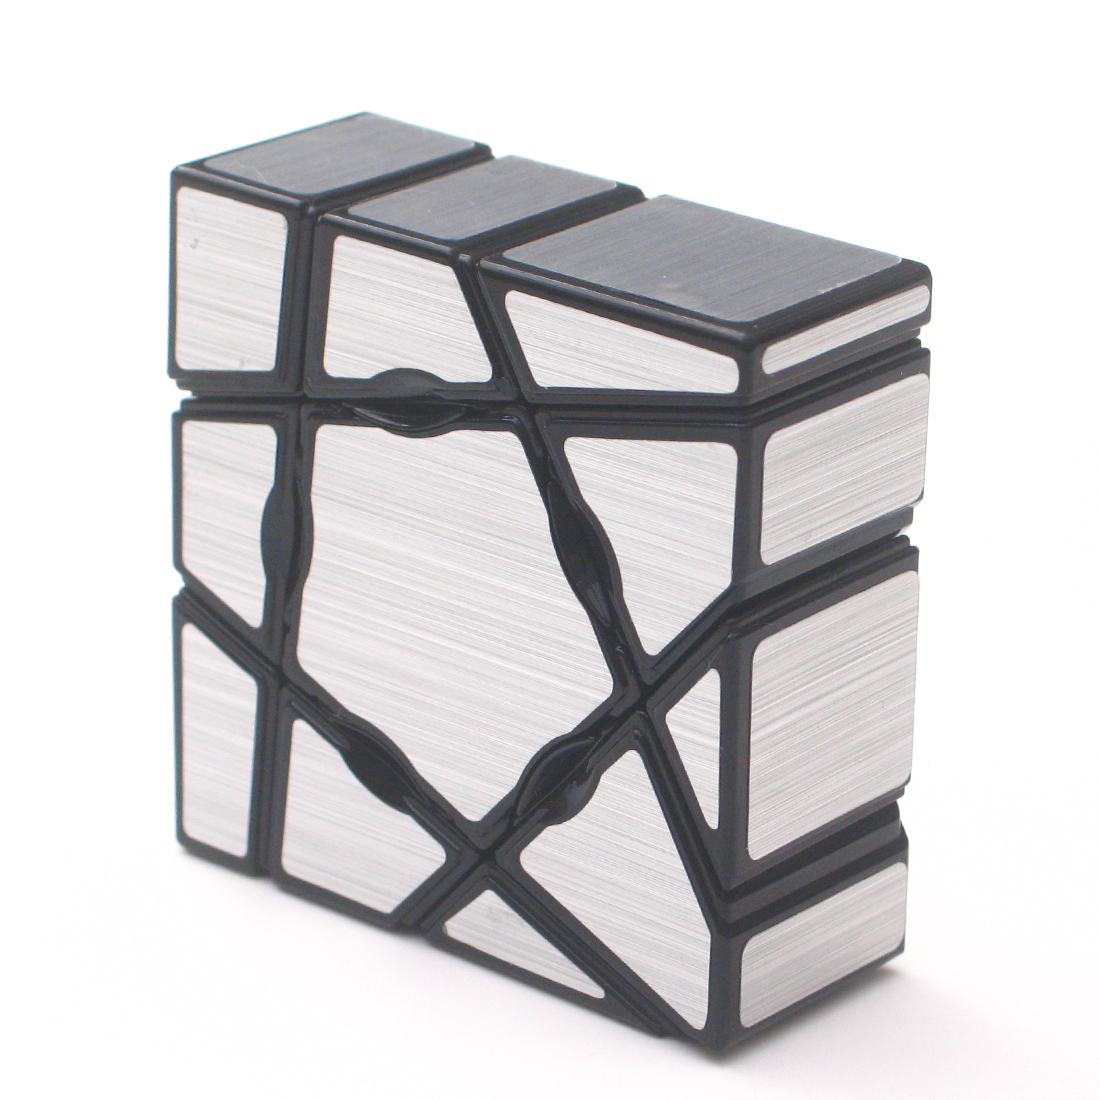 Yong Jun Abnormity 1X1 Magic Cube Creative Funny Puzzle Toys